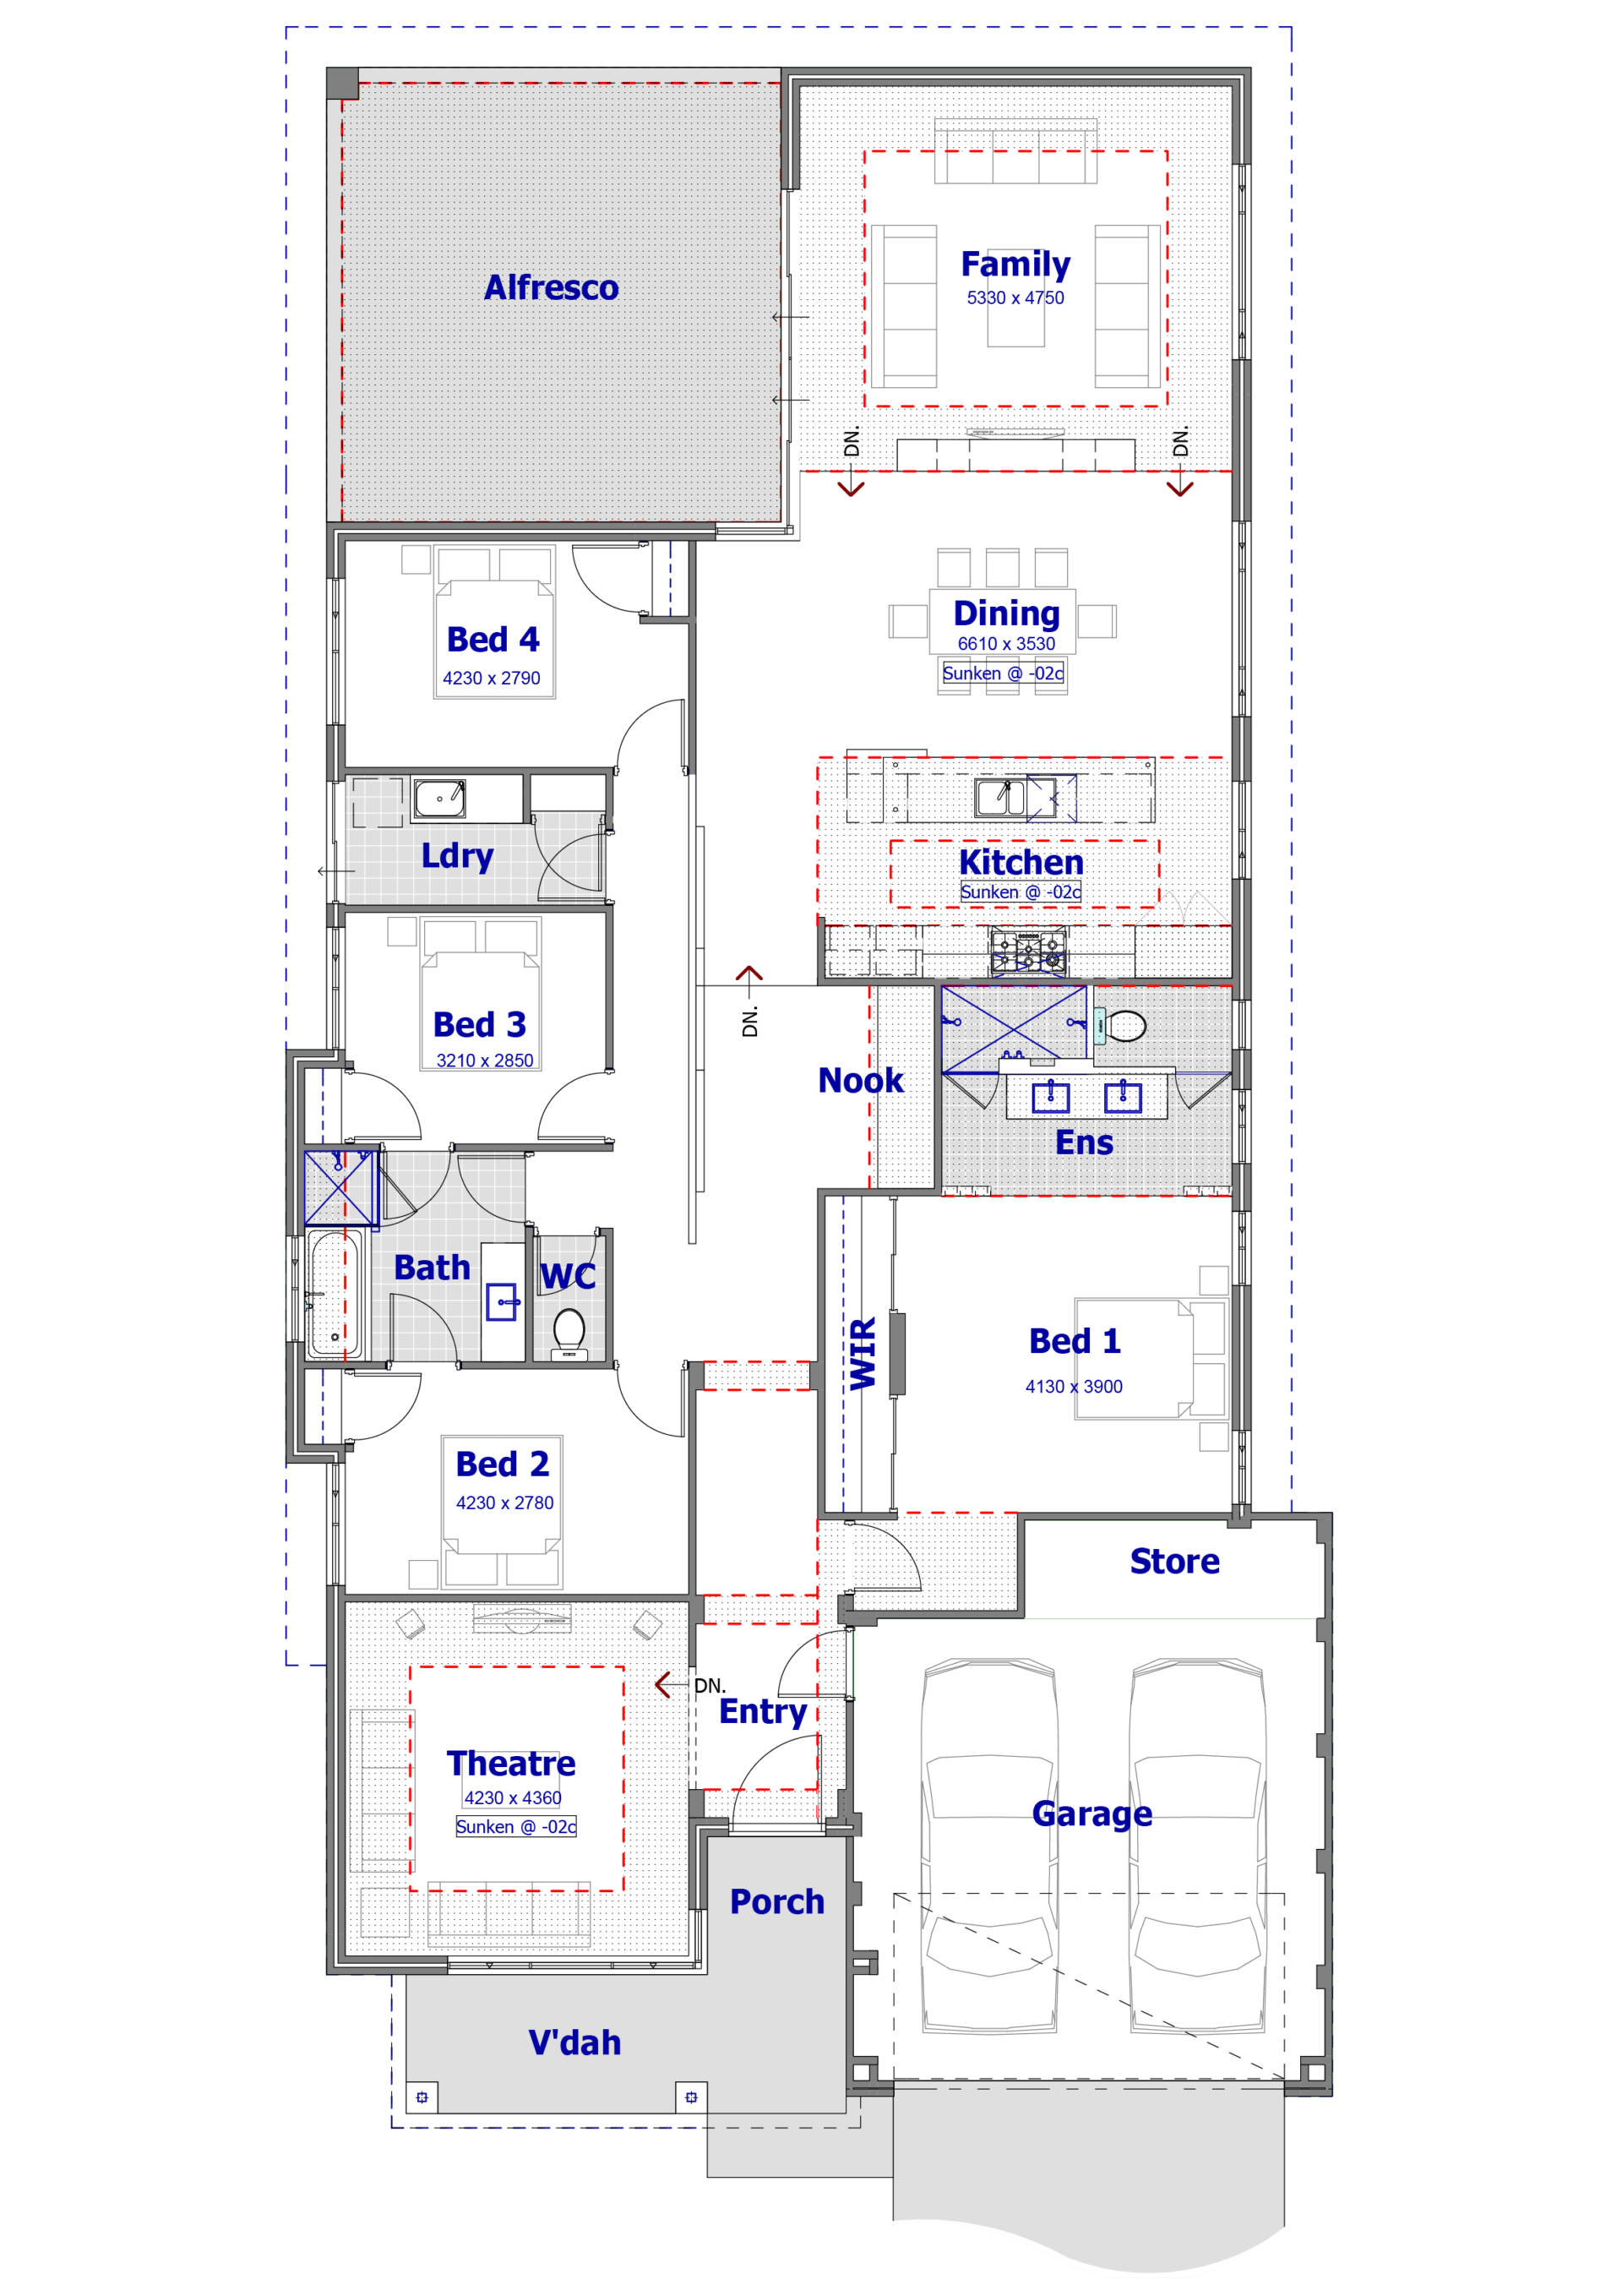 floor plan of the diamond home design on a white background